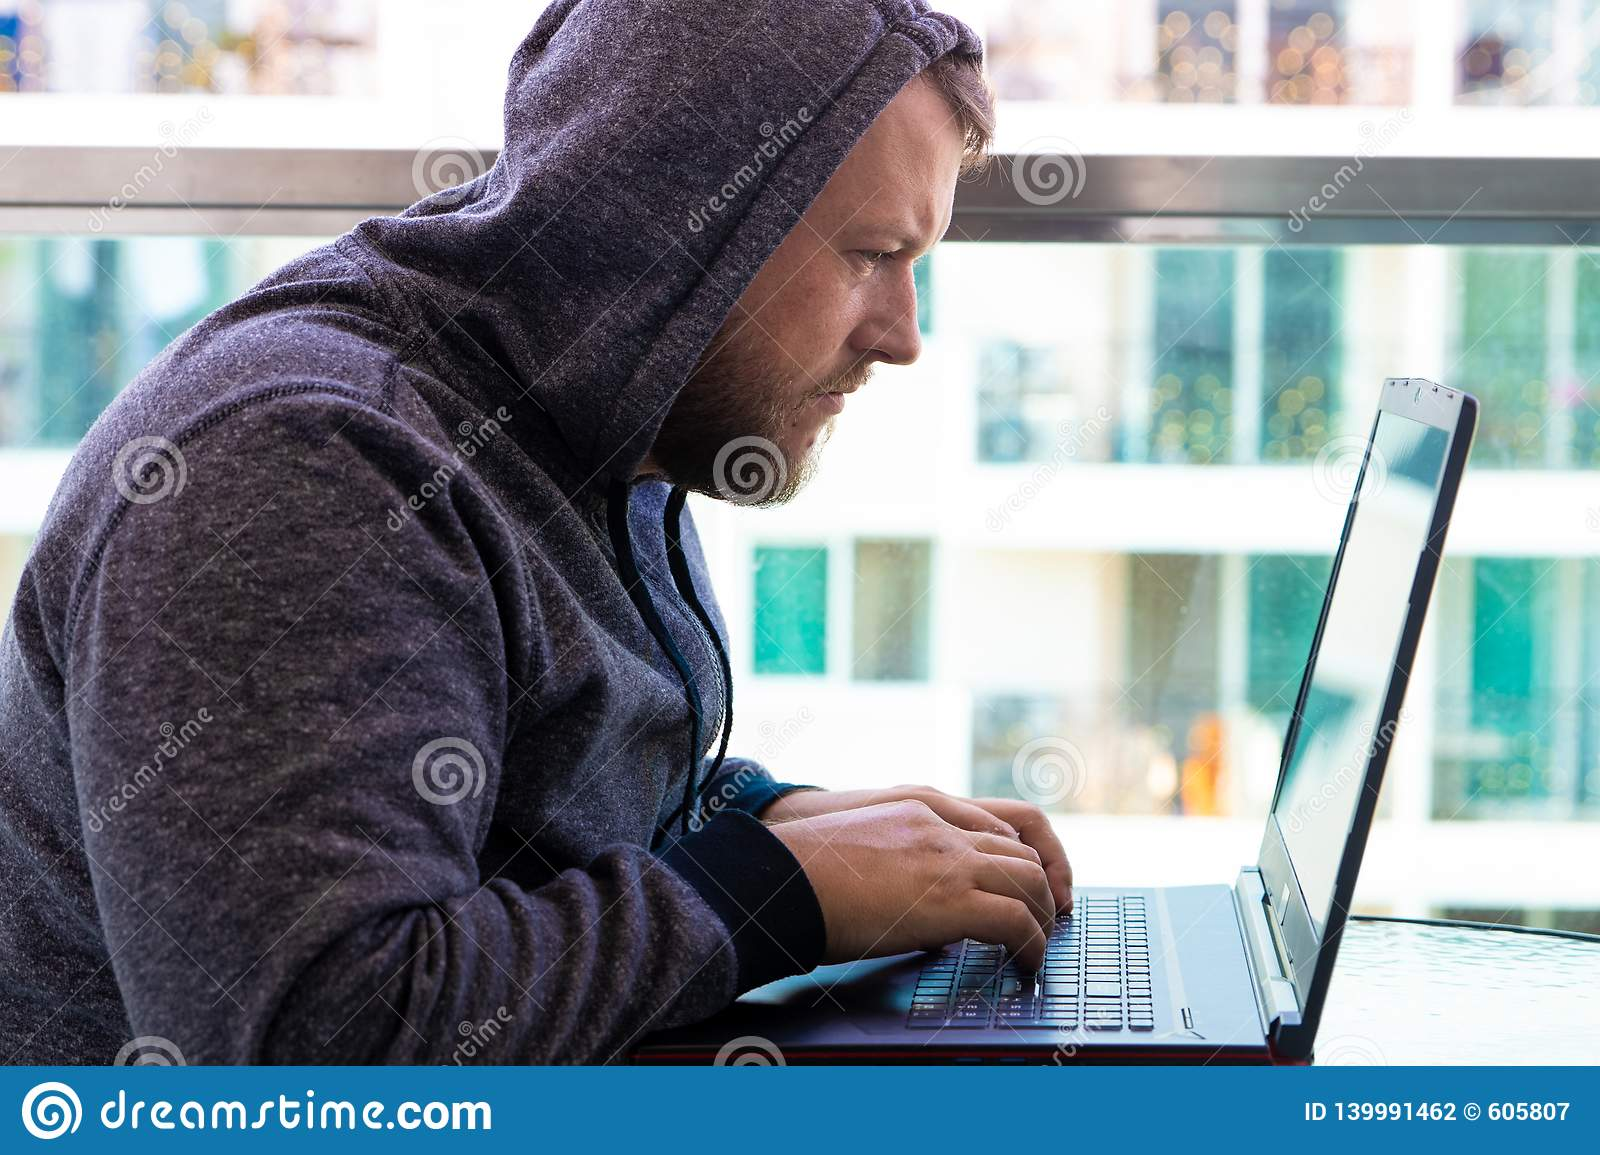 Cybercrime, hacking and technology concept - male hacker writing code or using computer virus program for cyber attack